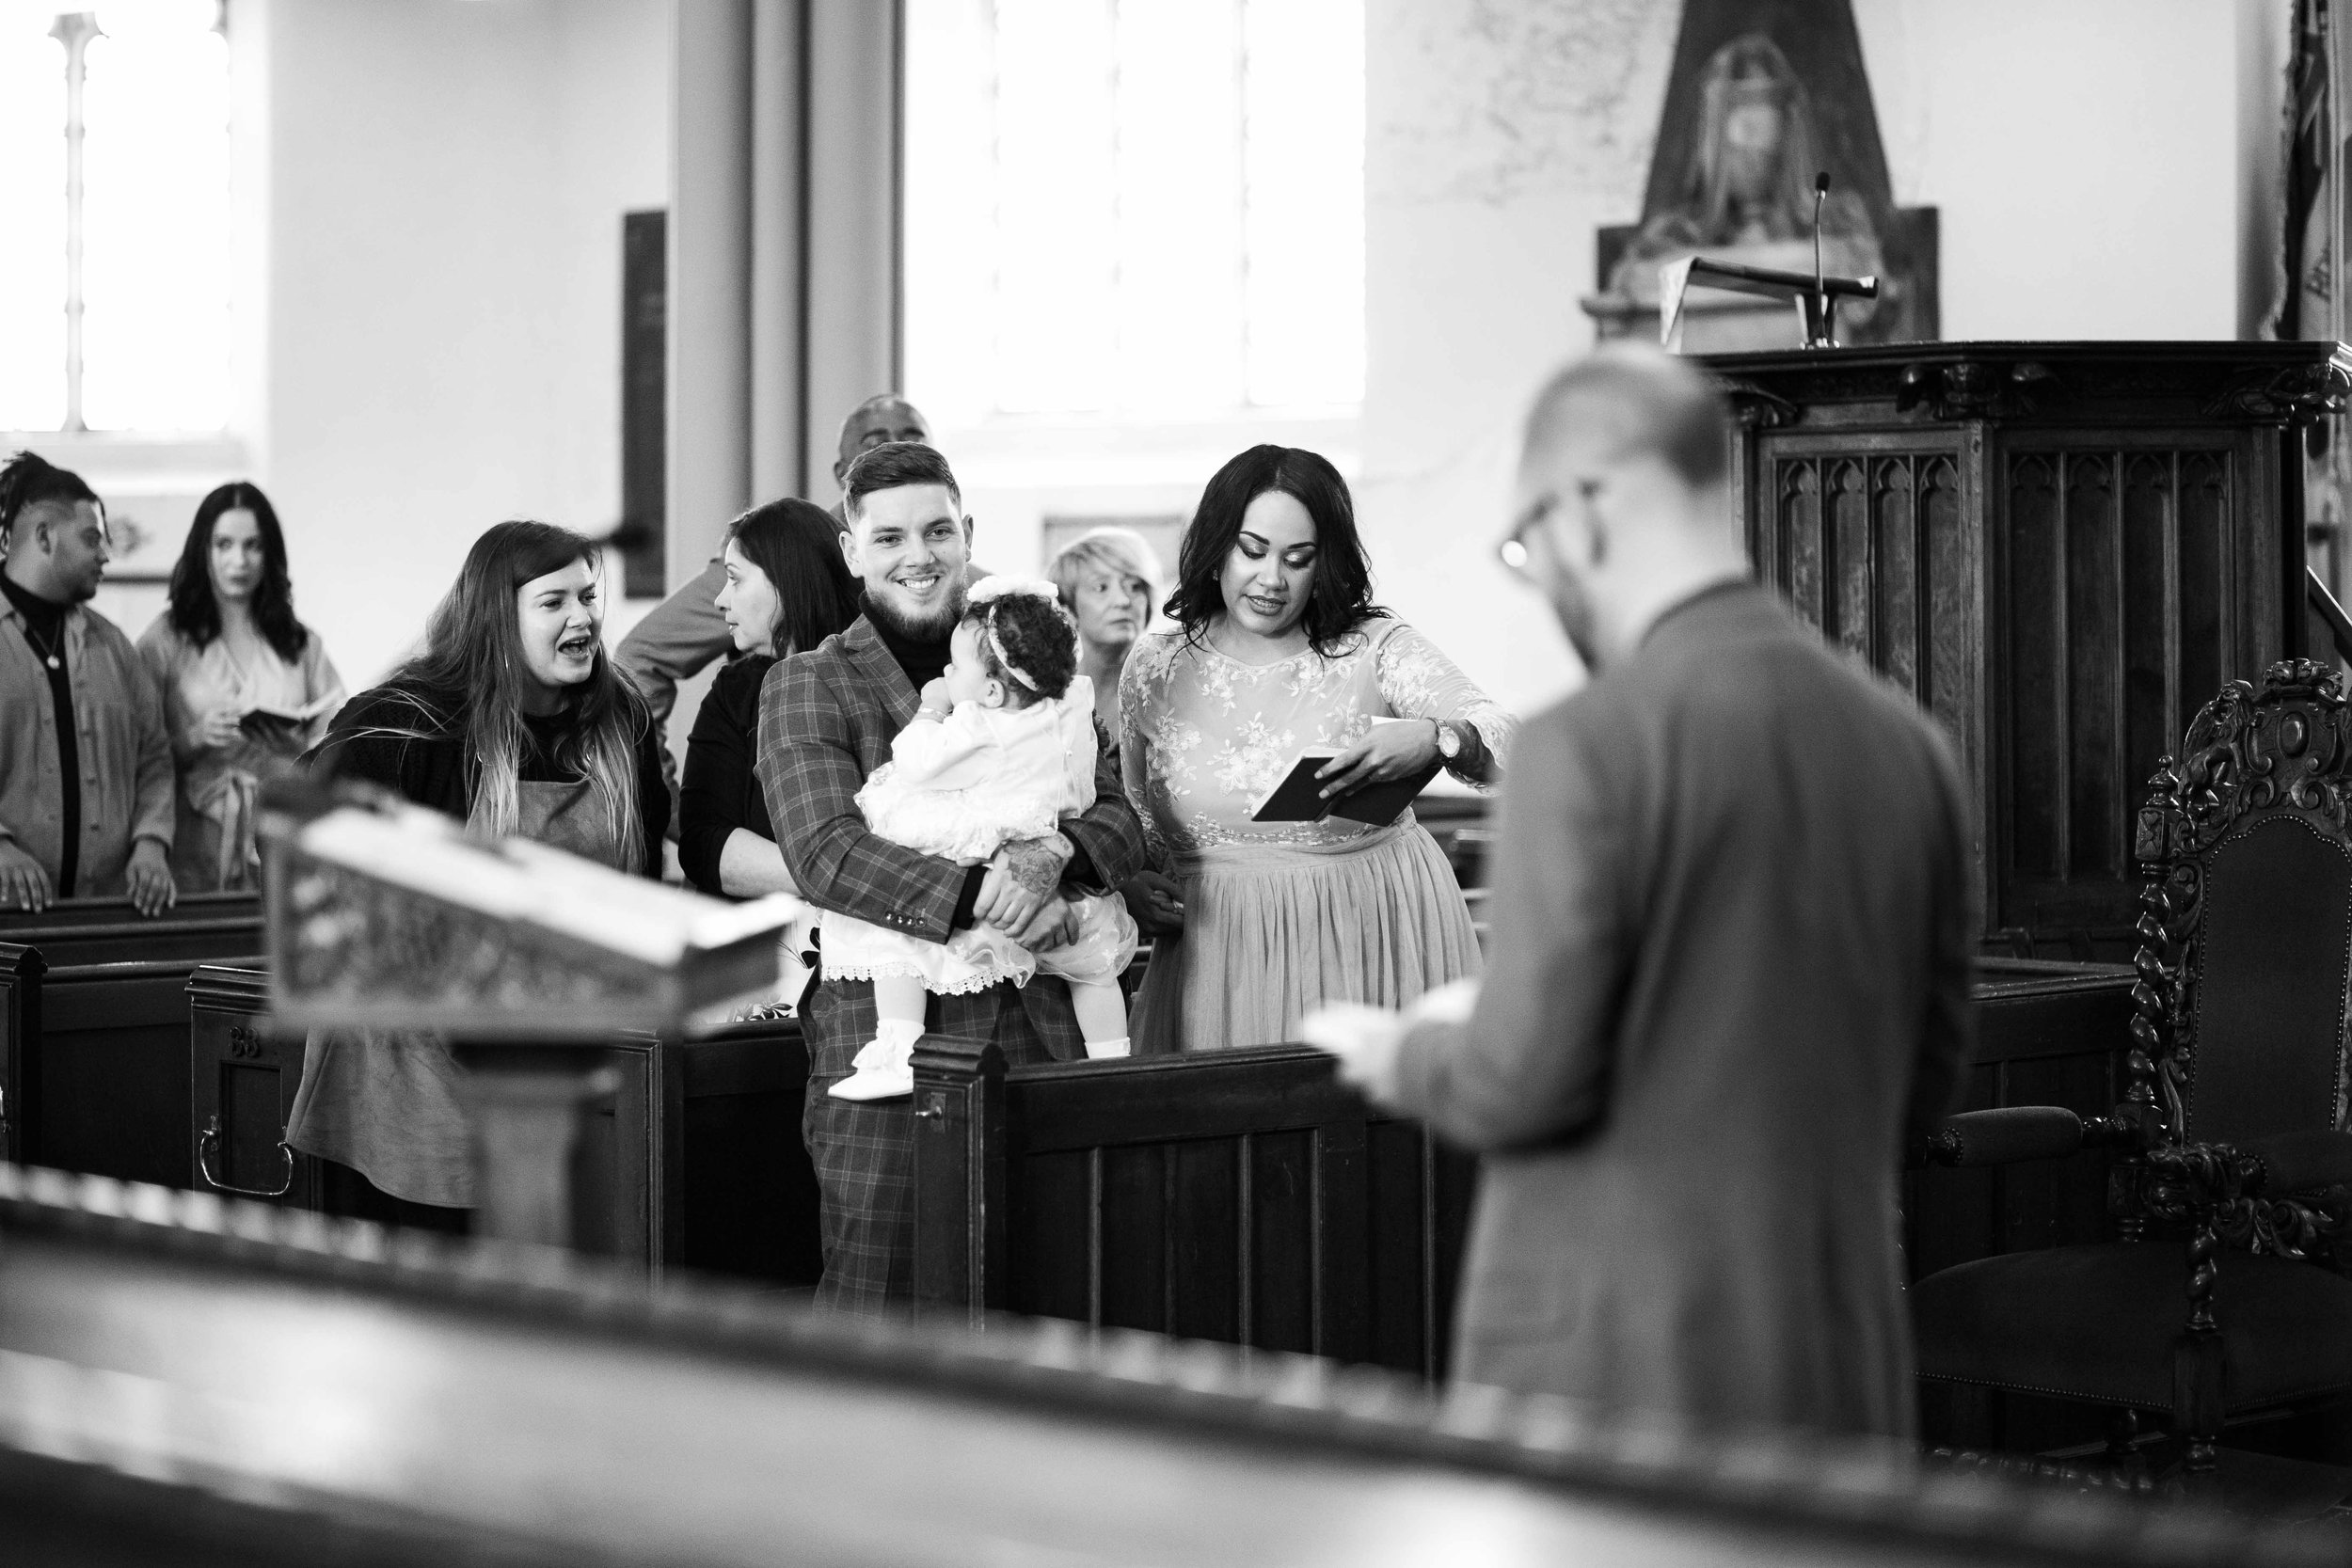 Lea-cooper-photography-christening-photographer-baptism-wolverhampton-wednesbury-walsall-willenhall-dudley-church-chapel-event-photography-9.jpg